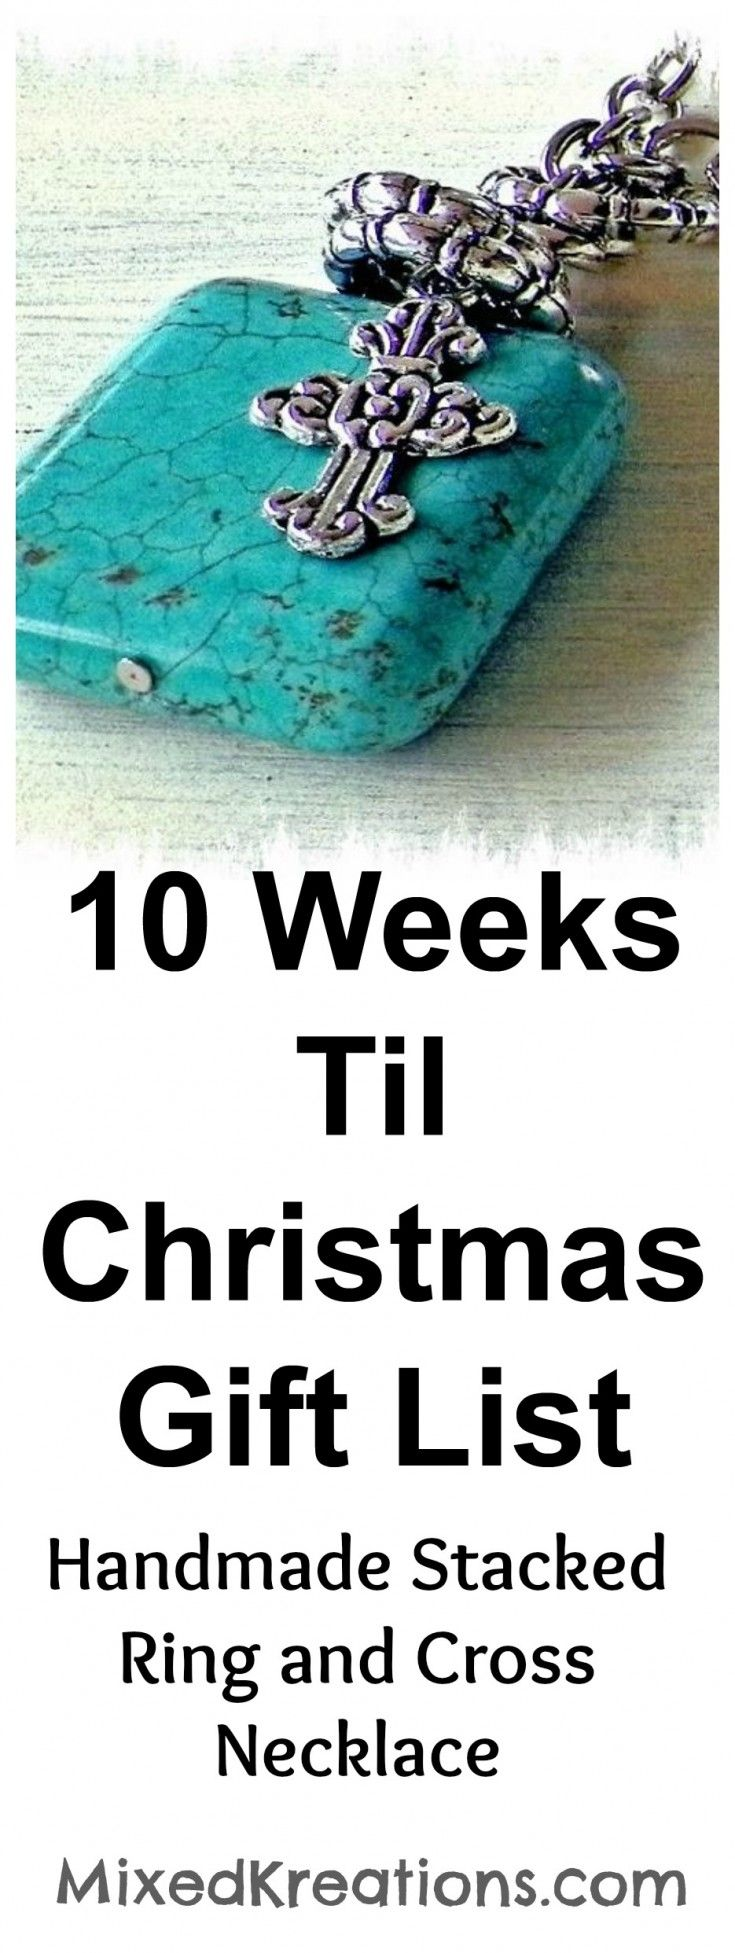 10 Weeks Til Christmas Gift List - Featured Stacked Ring and Cross ...